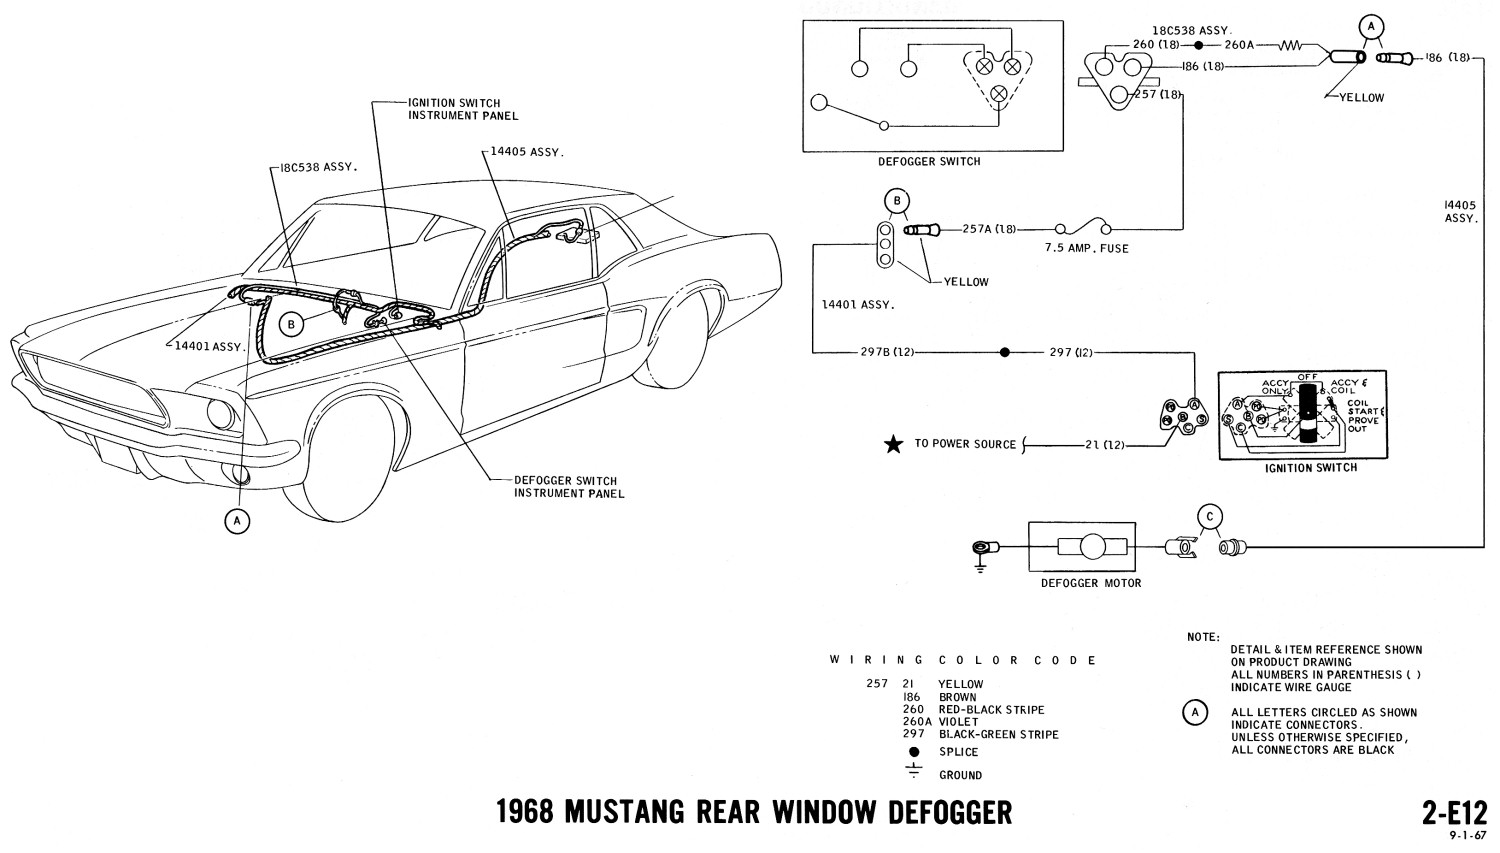 mercury cougar stereo wiring diagram 1968 mustang    wiring    diagrams evolving software  1968 mustang    wiring    diagrams evolving software